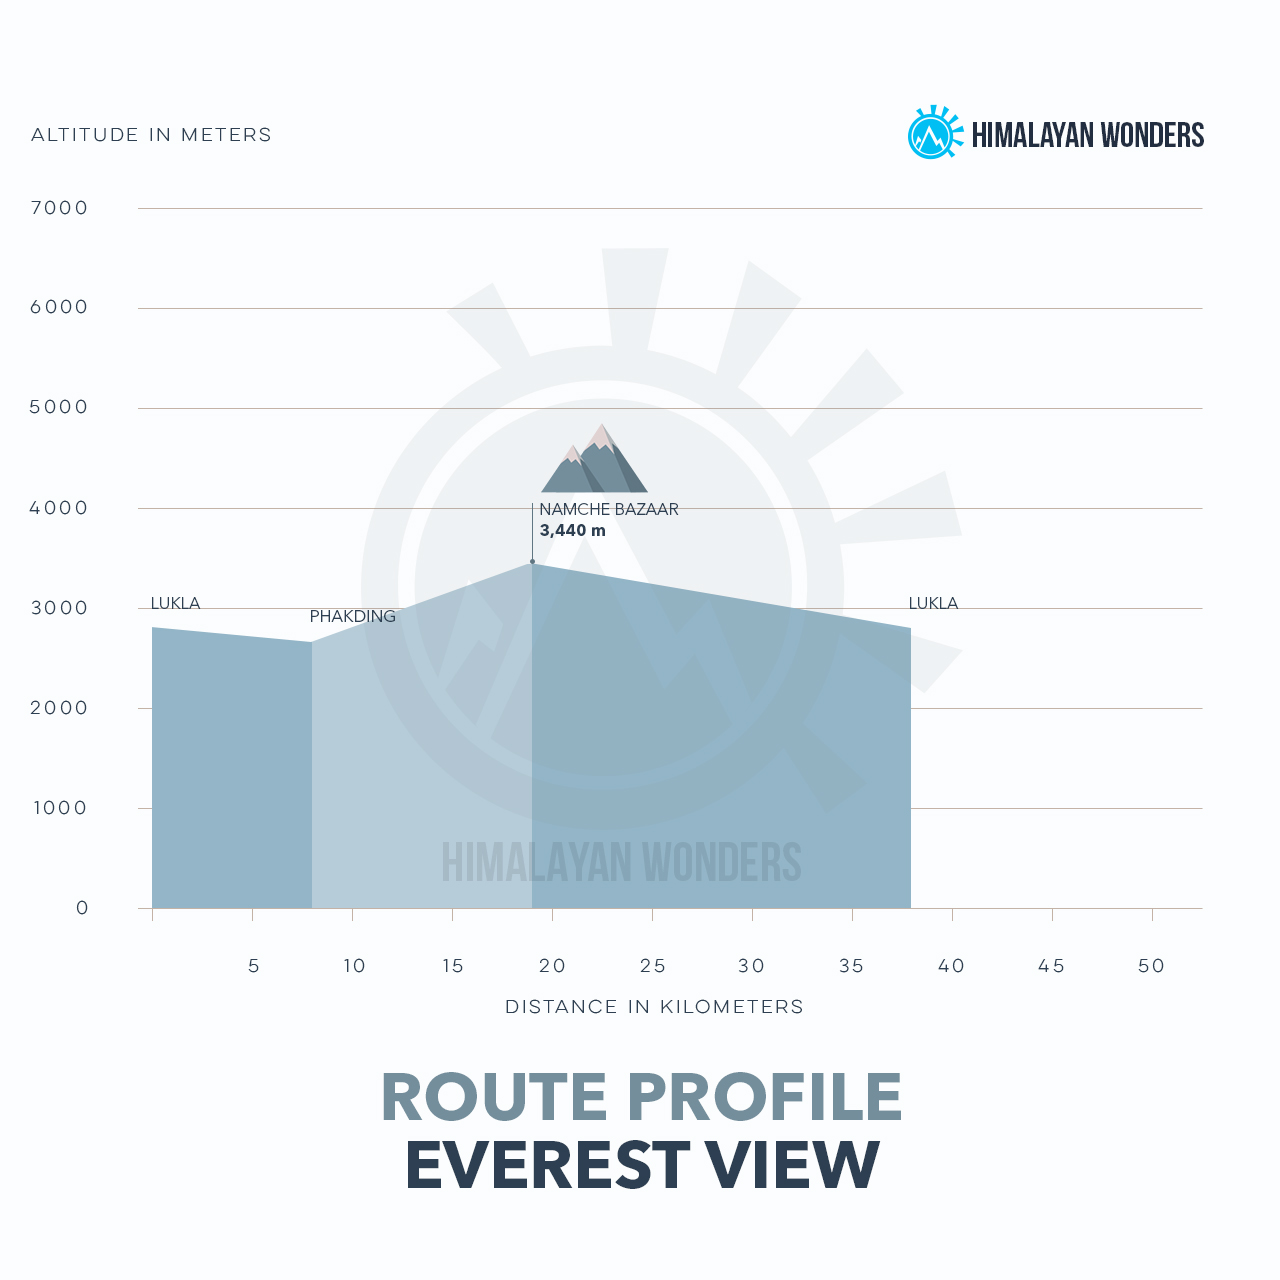 Everest View Route Profile